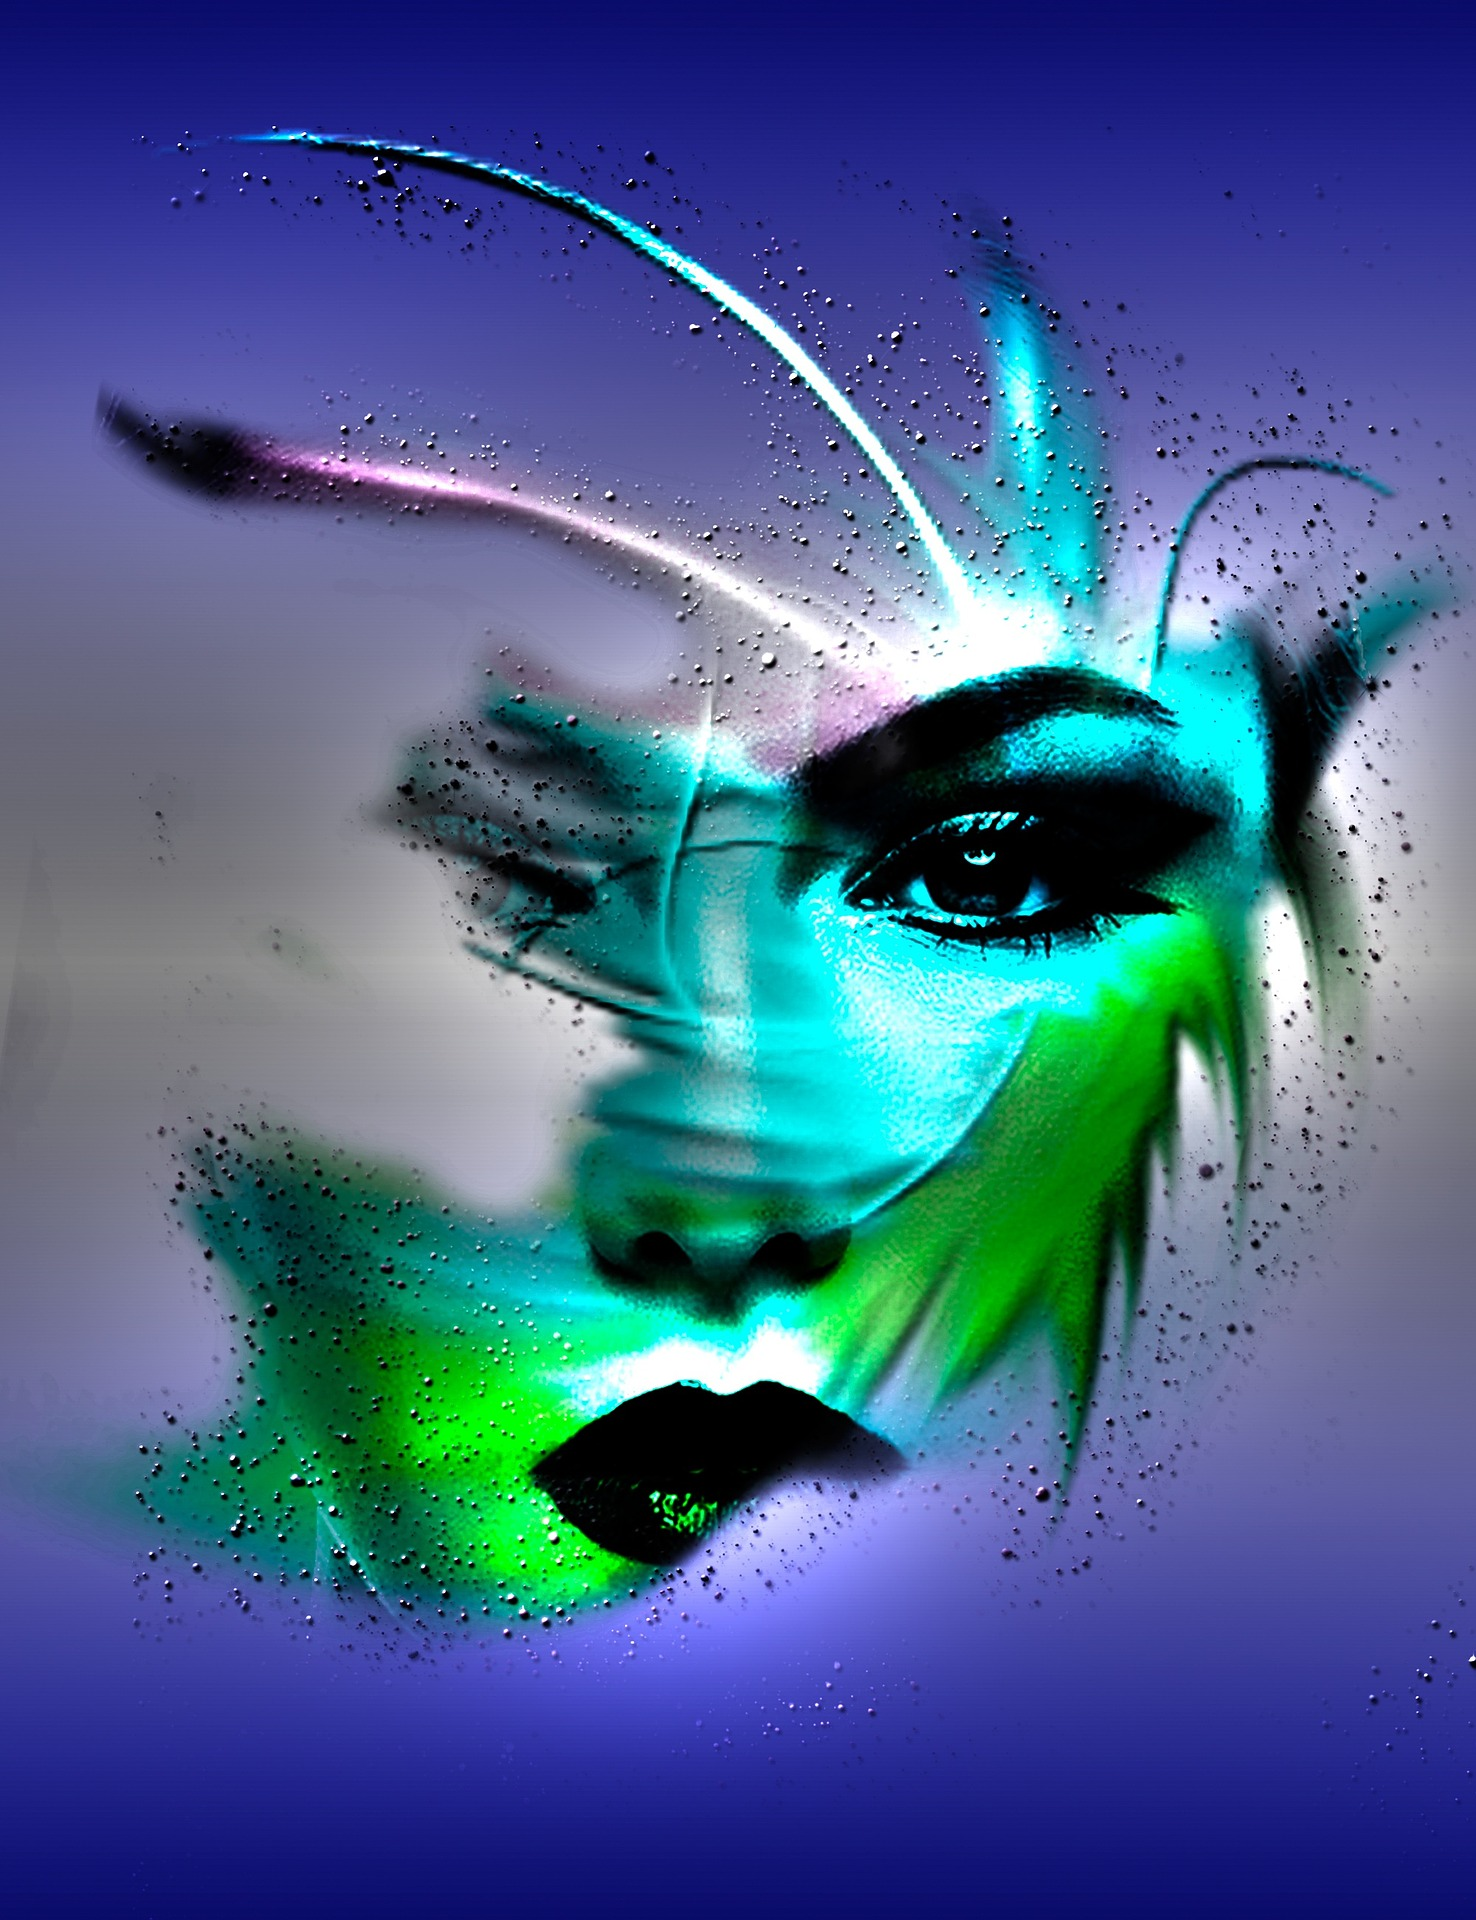 A new & more beautiful you